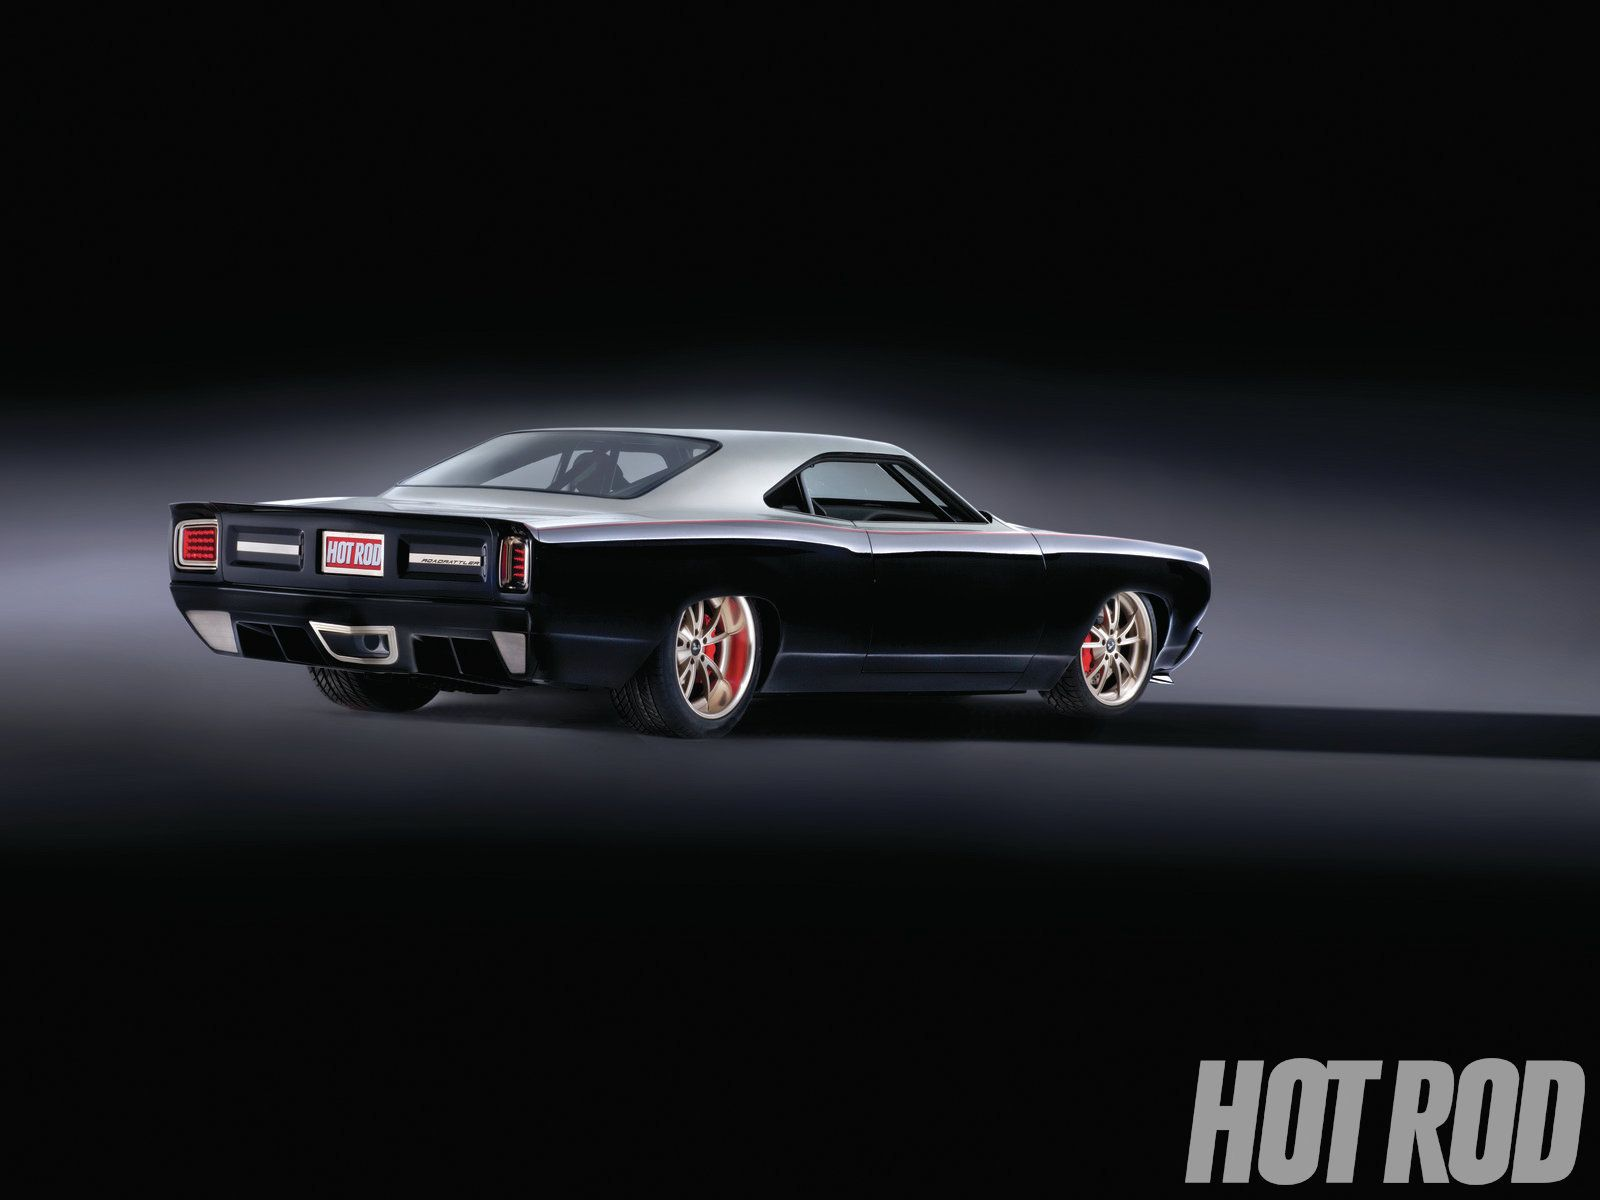 Cool Wallpapers Cars American Muscle Spitzer Concepts 69 Plymouth Roadrunner Wallpaper And